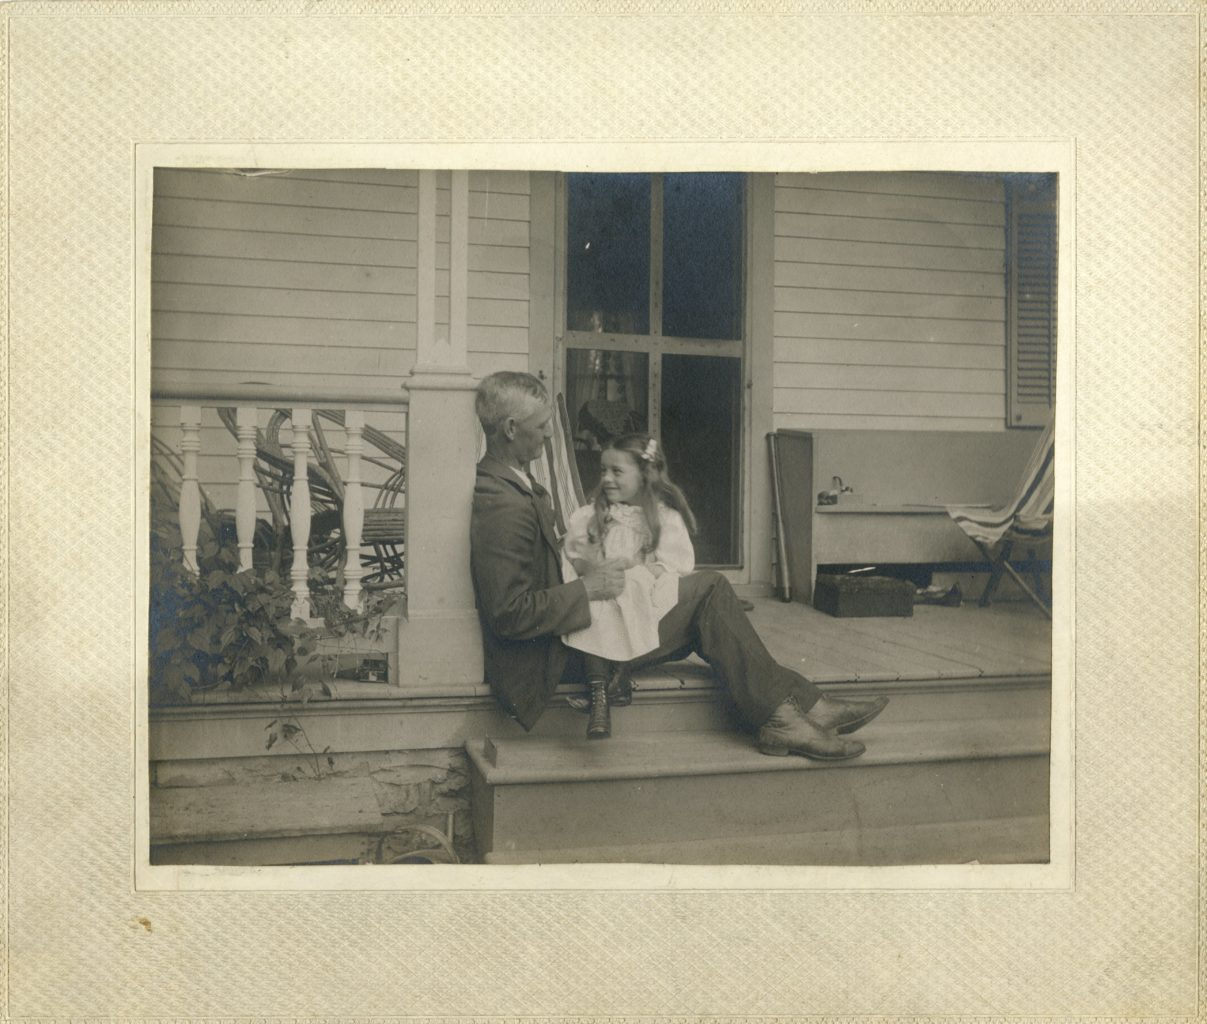 Paul Koren and Esther Torrison sit together on a porch.